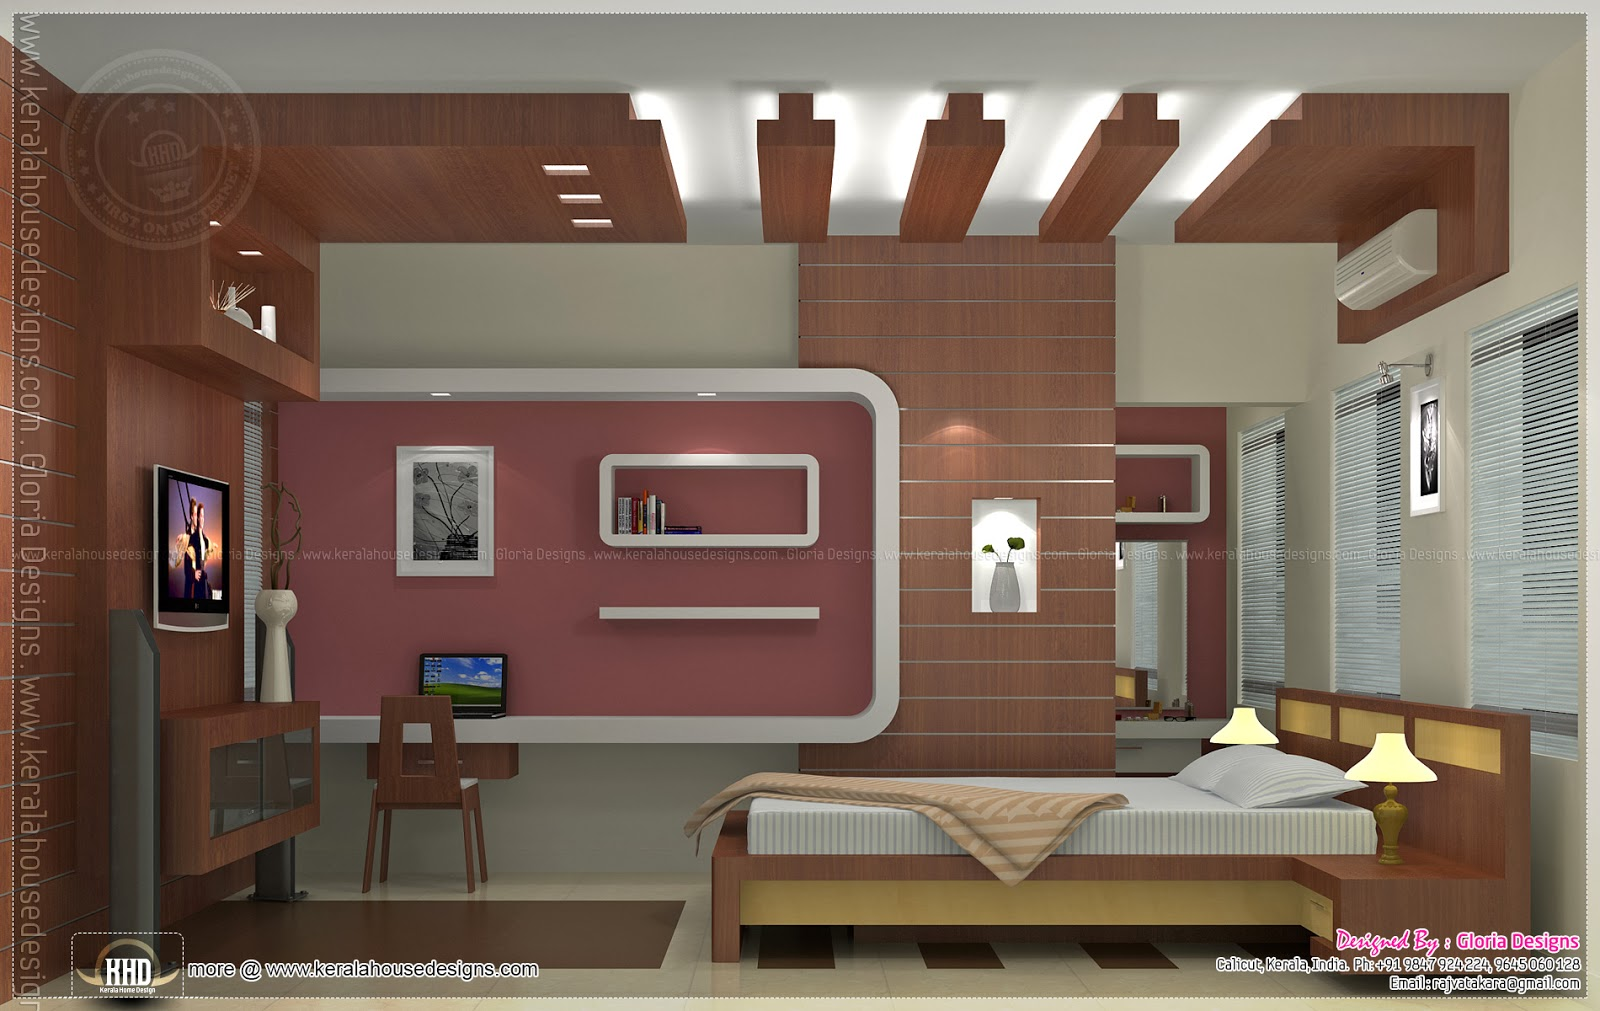 Home interior designs by gloria designs calicut kerala for Kerala house interior painting photos